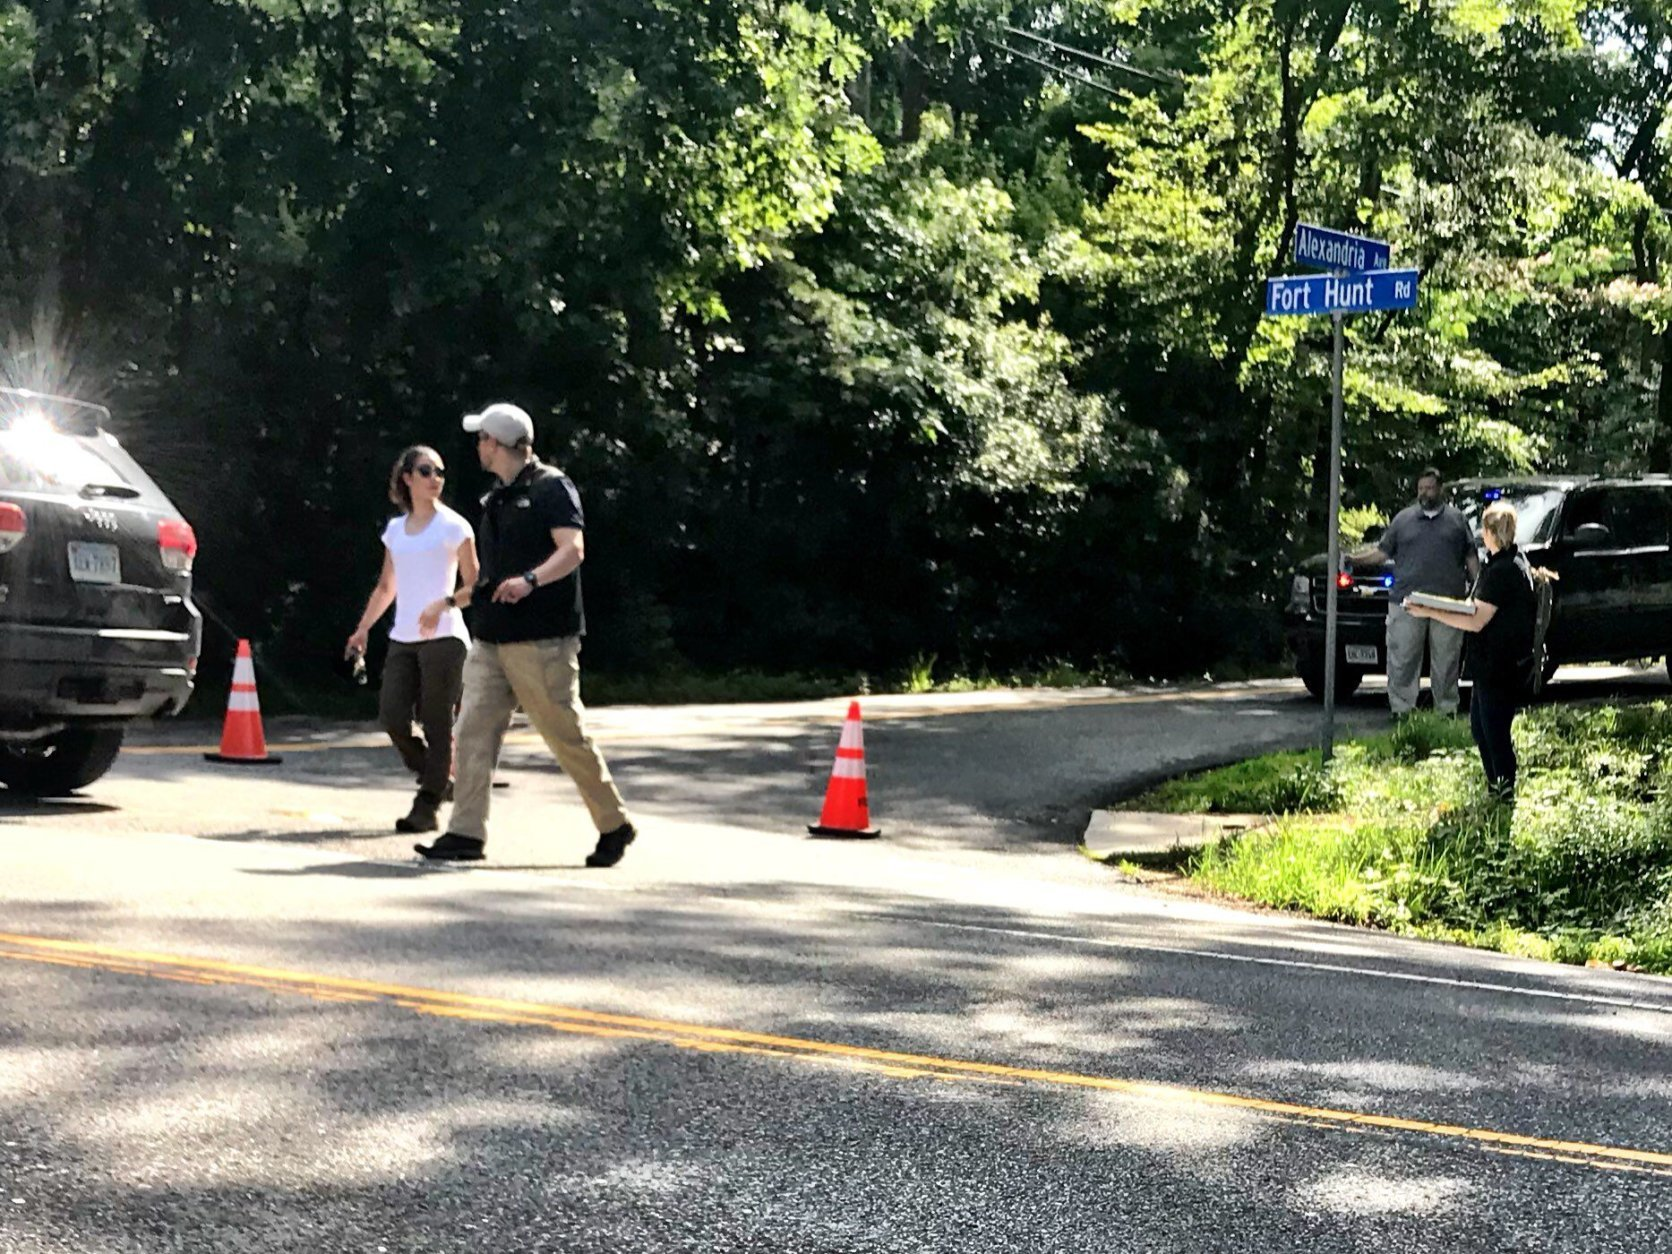 Crime scene investigators for the FBI are seen at the intersection where Bijan Ghaisar was shot by Park Police. (WTOP/Neal Augenstein)